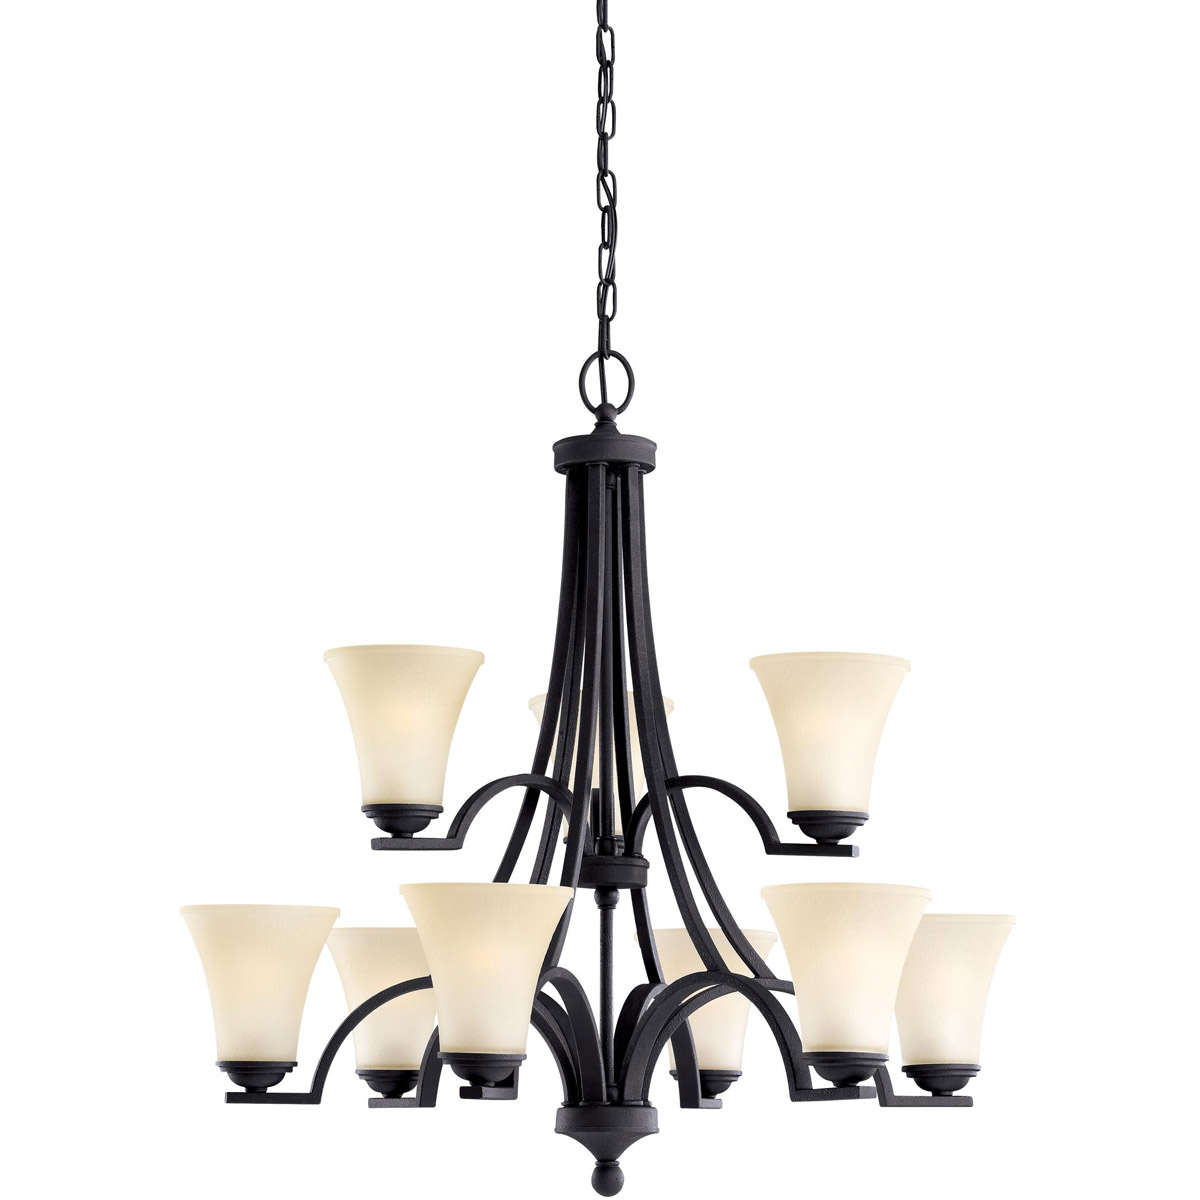 Sea Gull 31377BLE-839 Somerton 9 Light 30 inch Blacksmith Chandelier Multi-Tier Ceiling Light in Cafe Tint Glass, Fluorescent photo